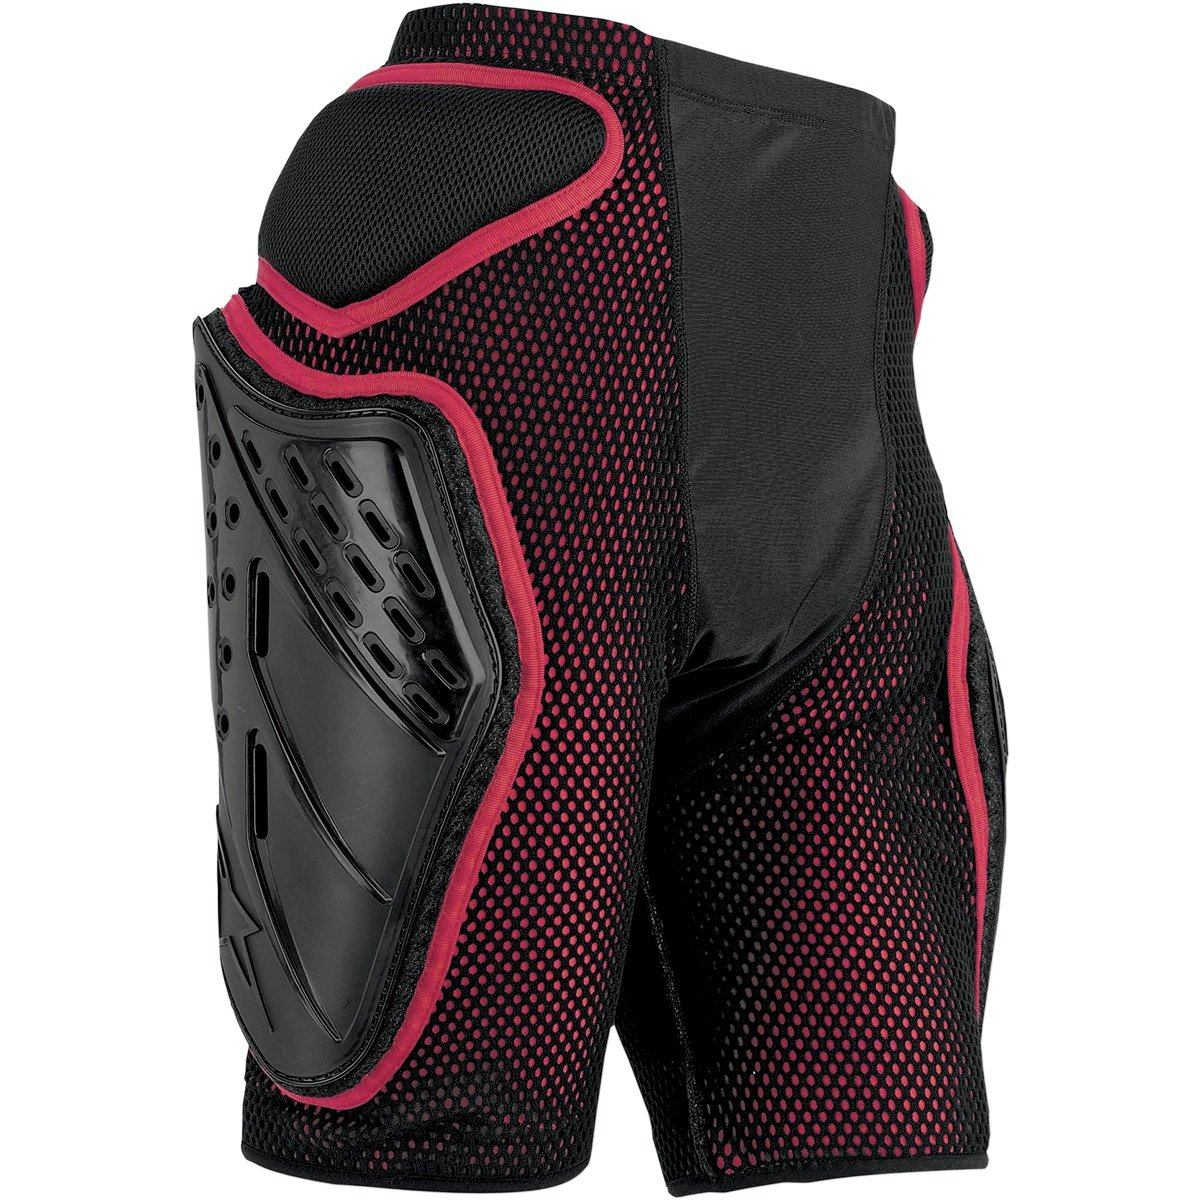 Alpinestars Bionic Freeride Shorts (Black/Red, X-Large)